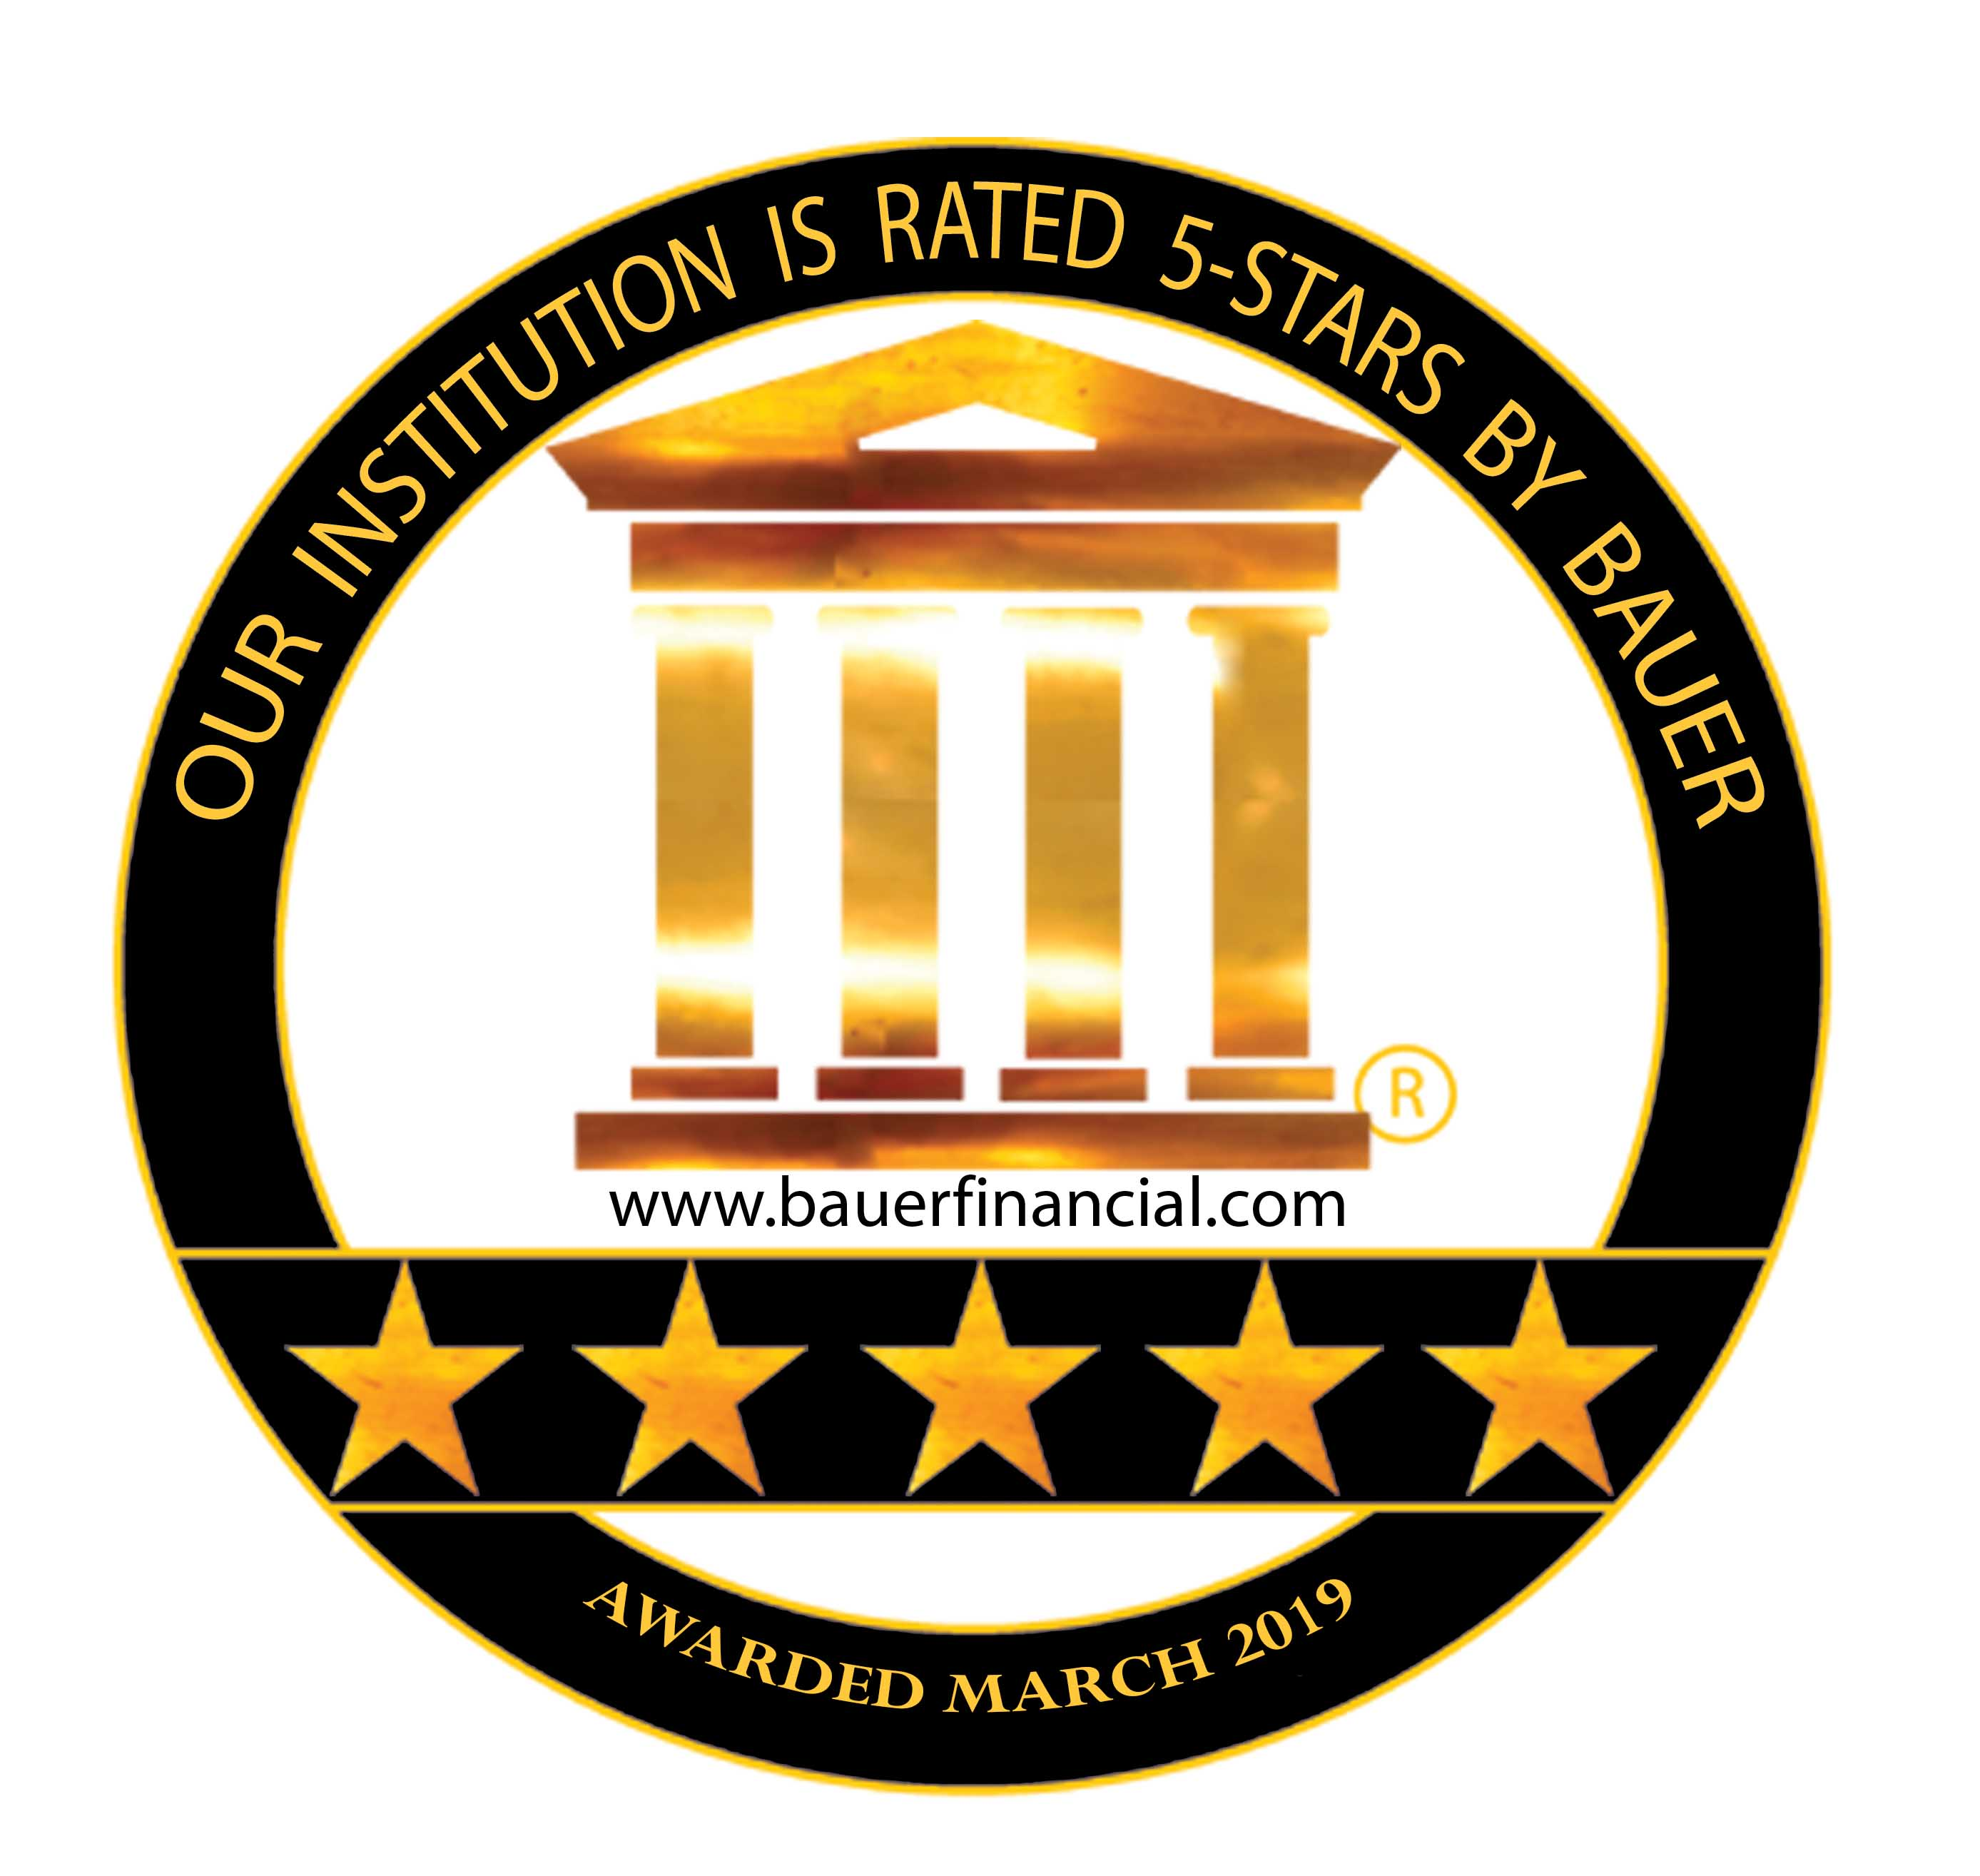 Bauer 5 Star Rating March 2019